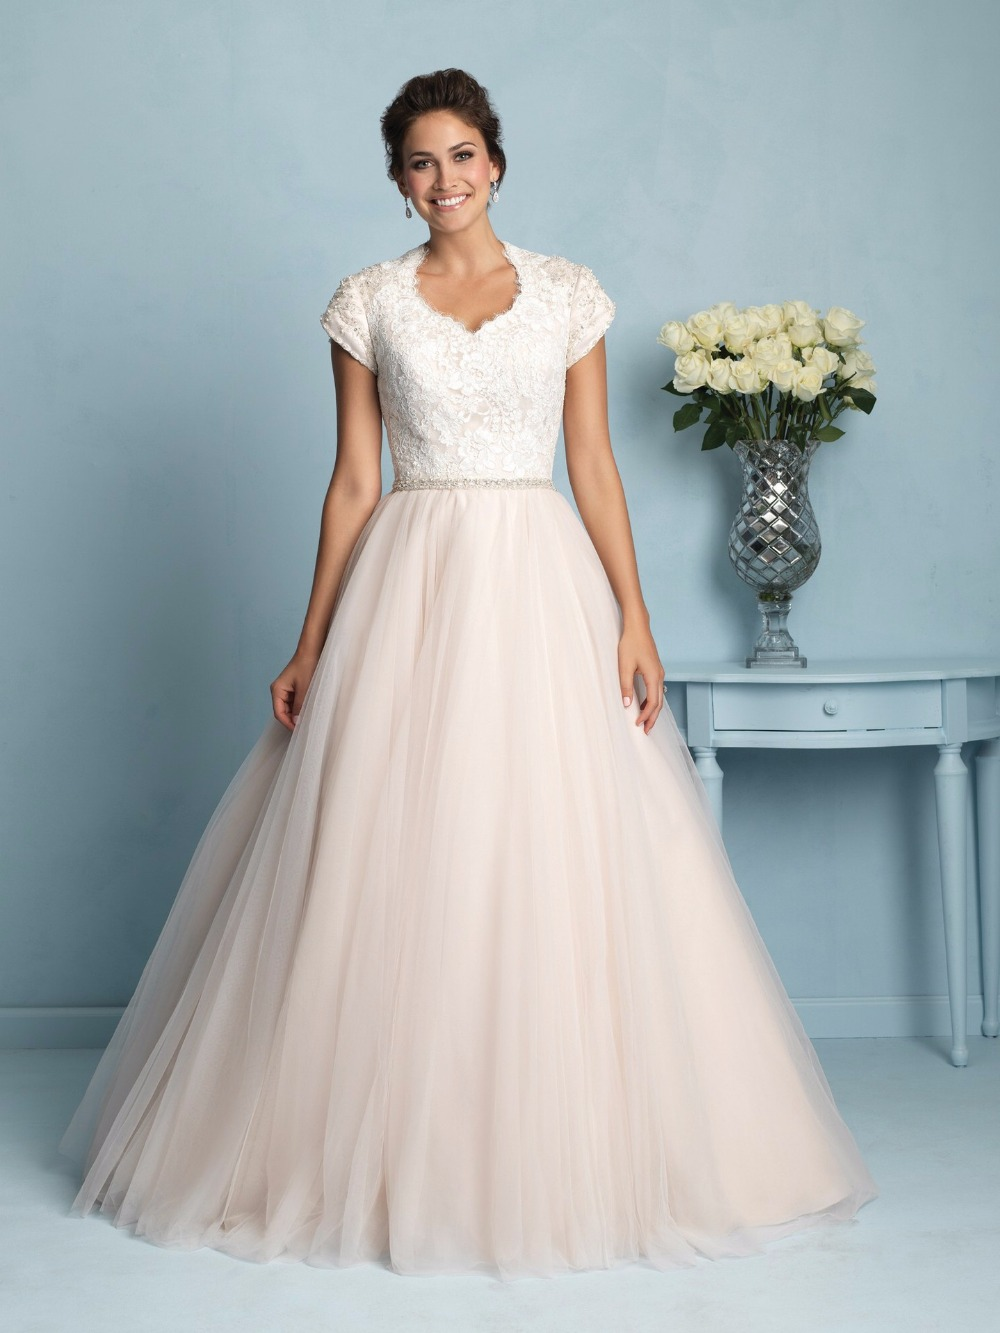 Wedding Dresses 2016 Tulle Short Sleeve Lace Appliques Pearls Ruched Bridal Dresses